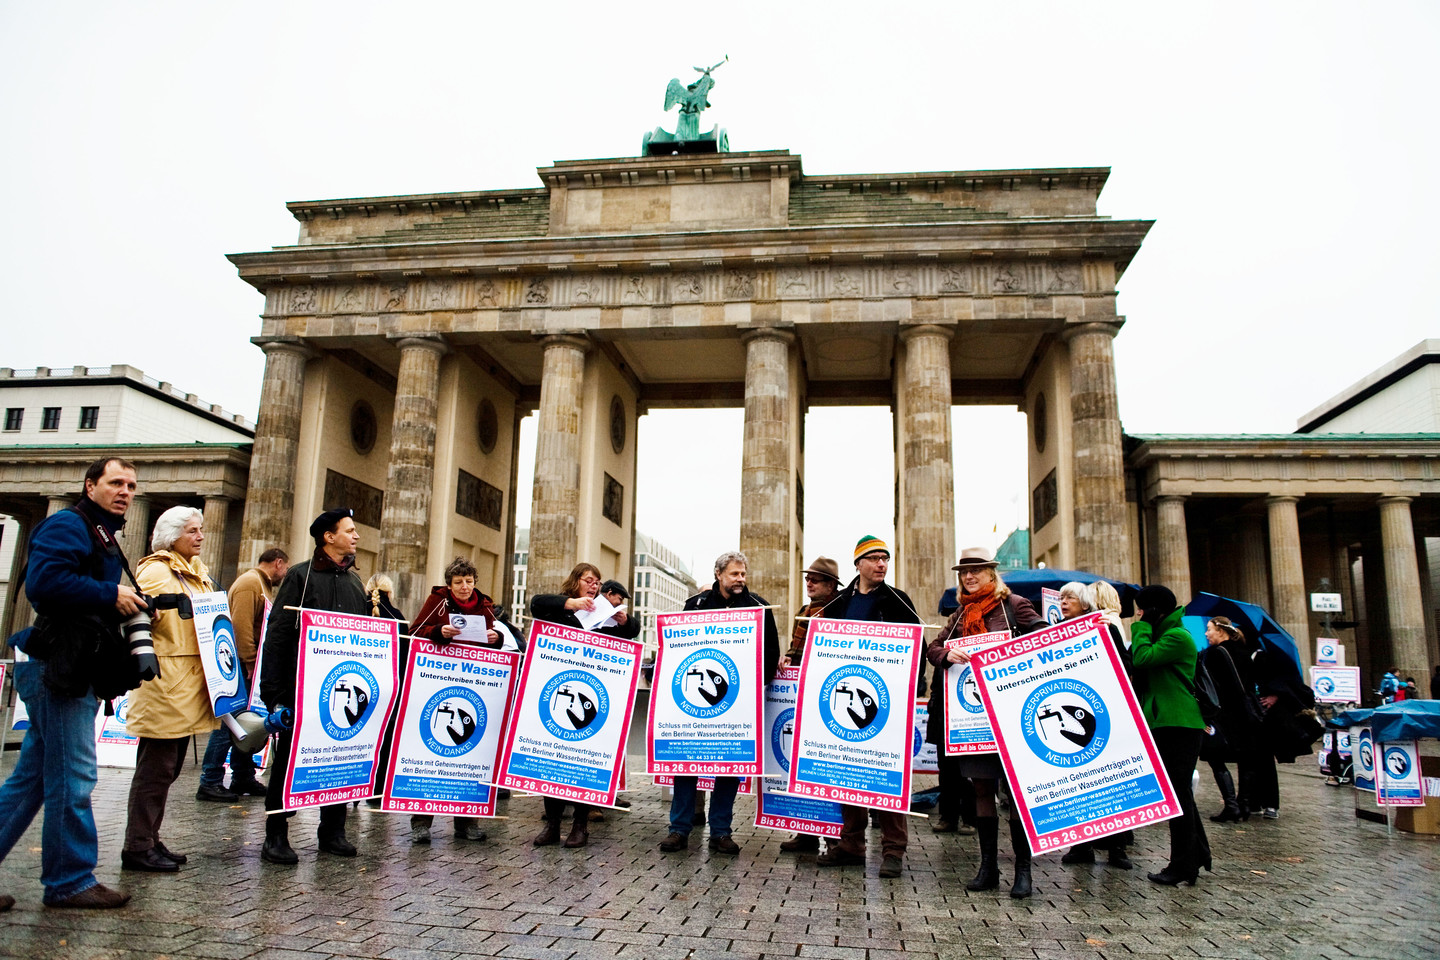 A group of water activists stand in front of the Brandenburger Tor holding protest signs.